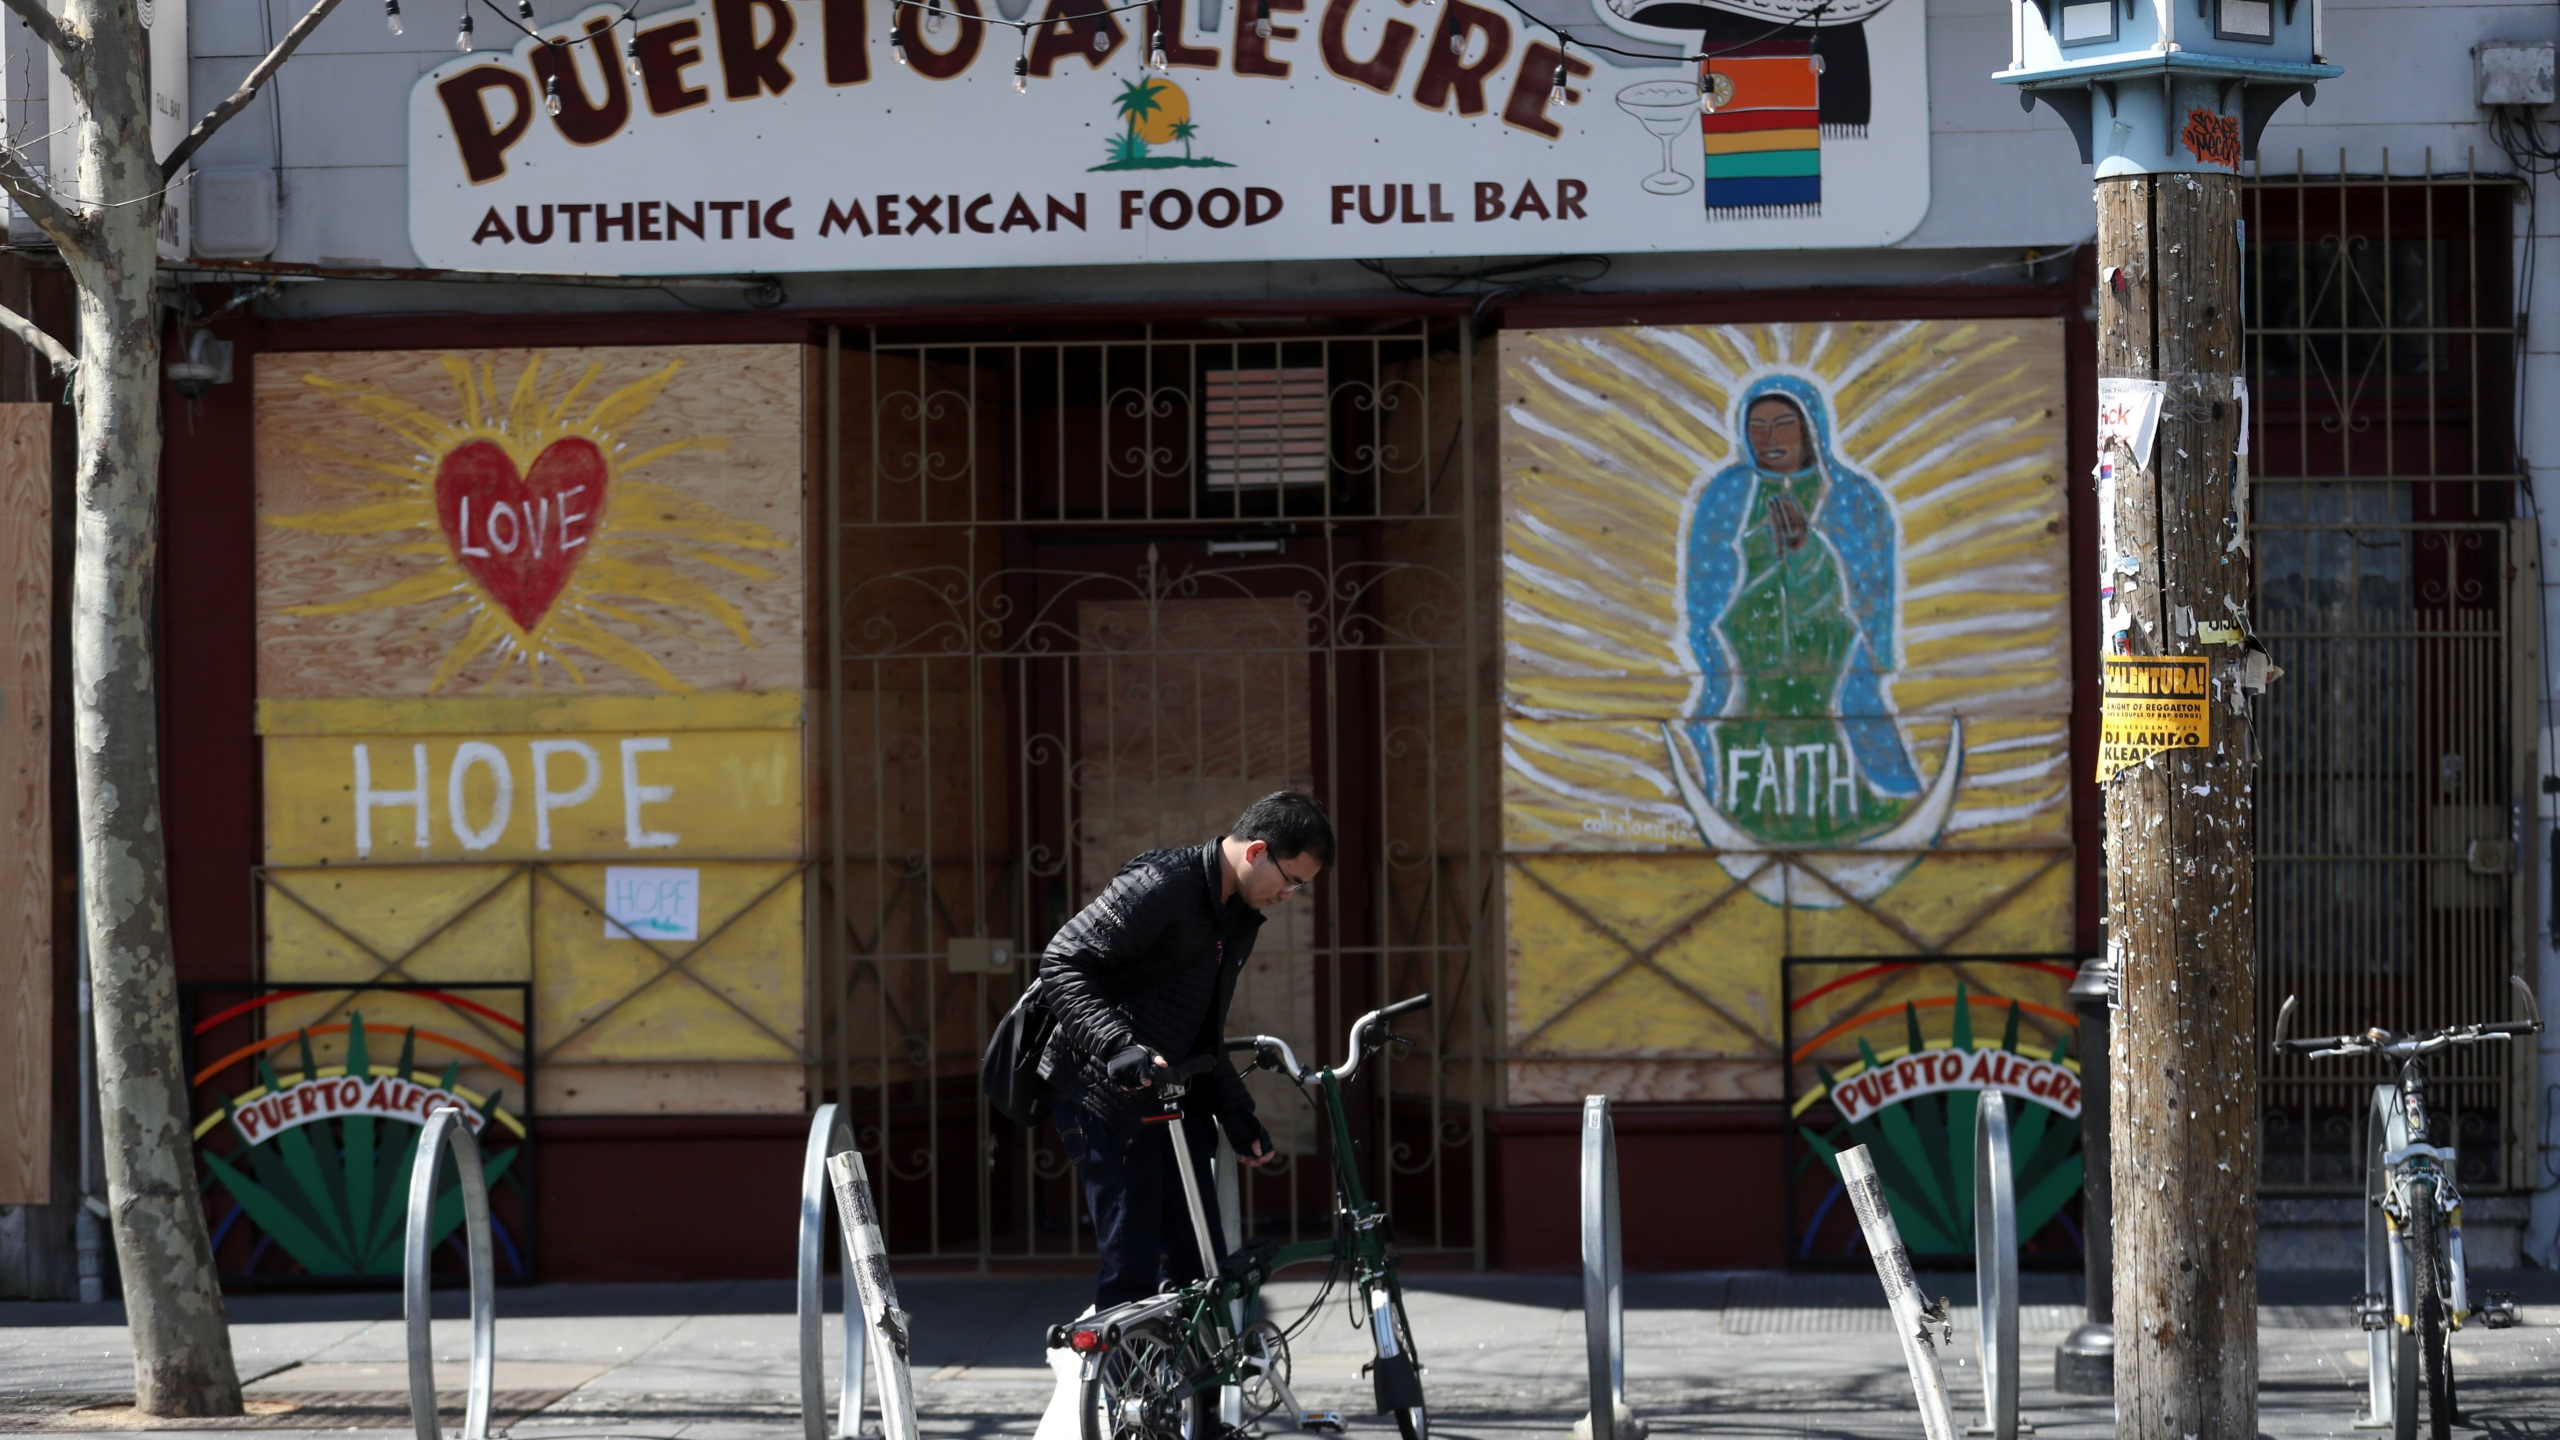 A cyclist parks his bicycle in front of a business that has the windows covered with plywood on Valencia Street on March 20, 2020 in San Francisco. (Justin Sullivan/Getty Images)